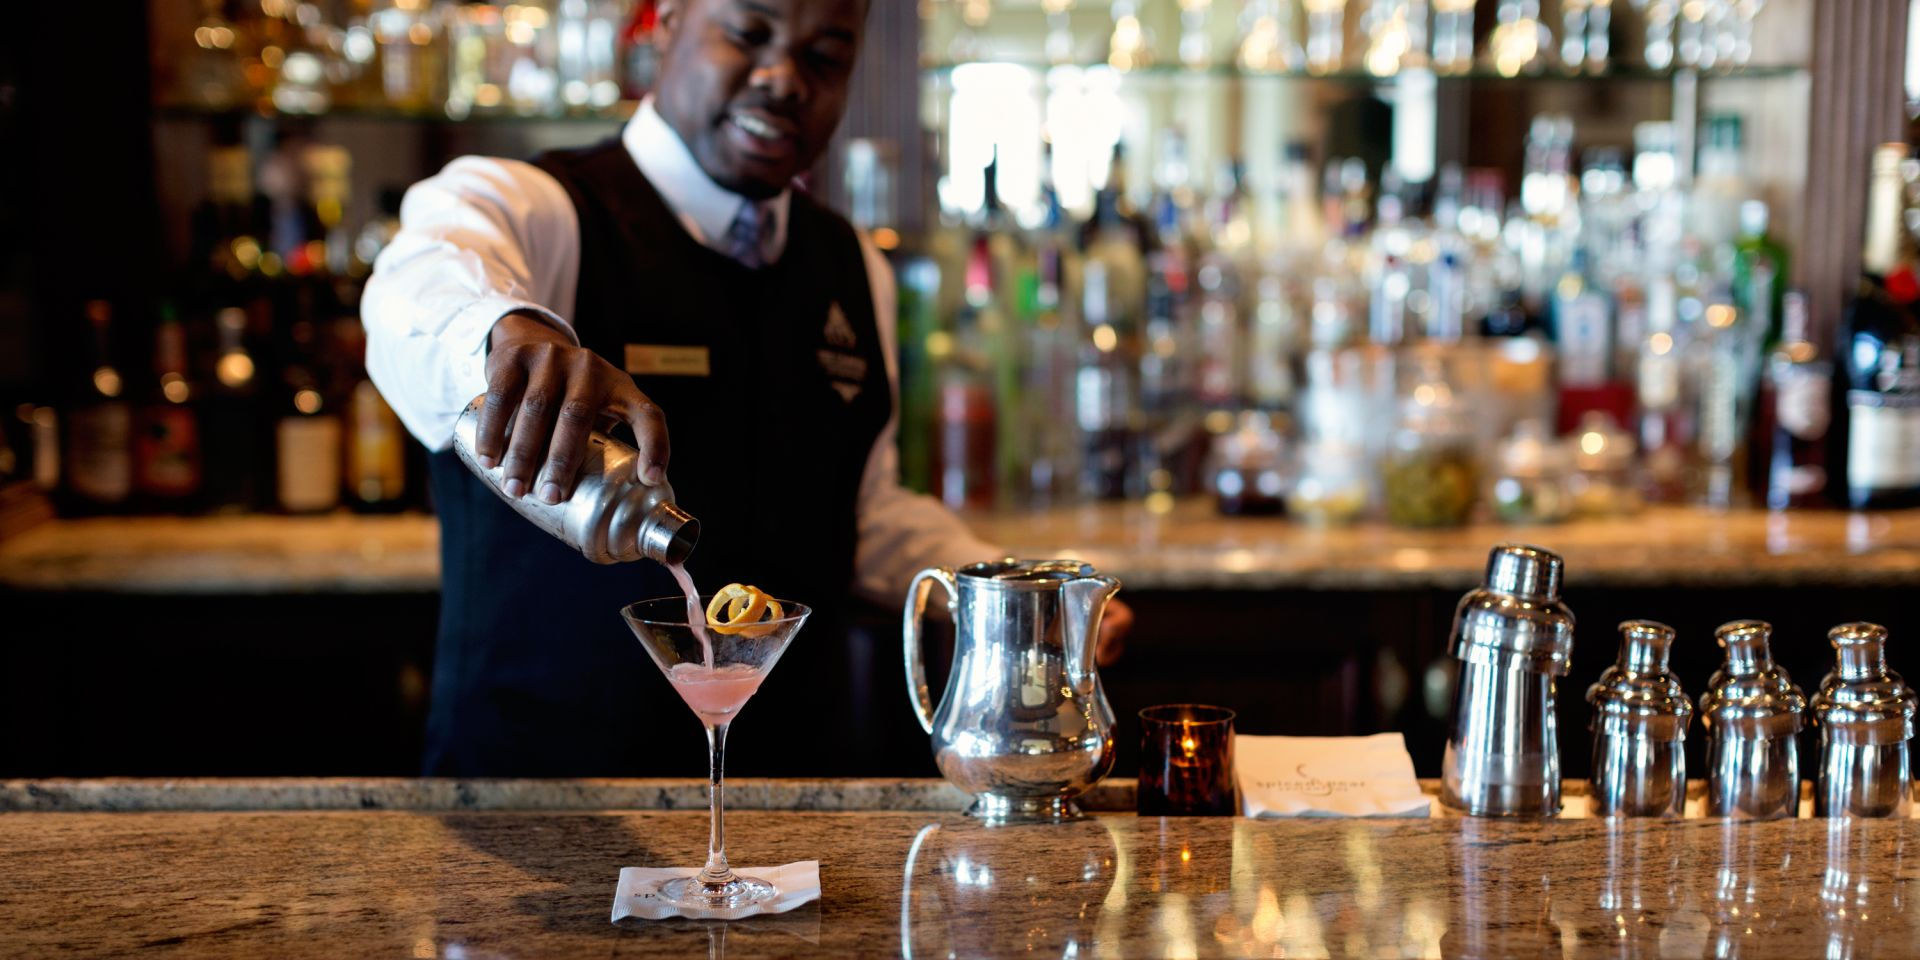 Maurice pouring a cocktail at The Chanler Bar